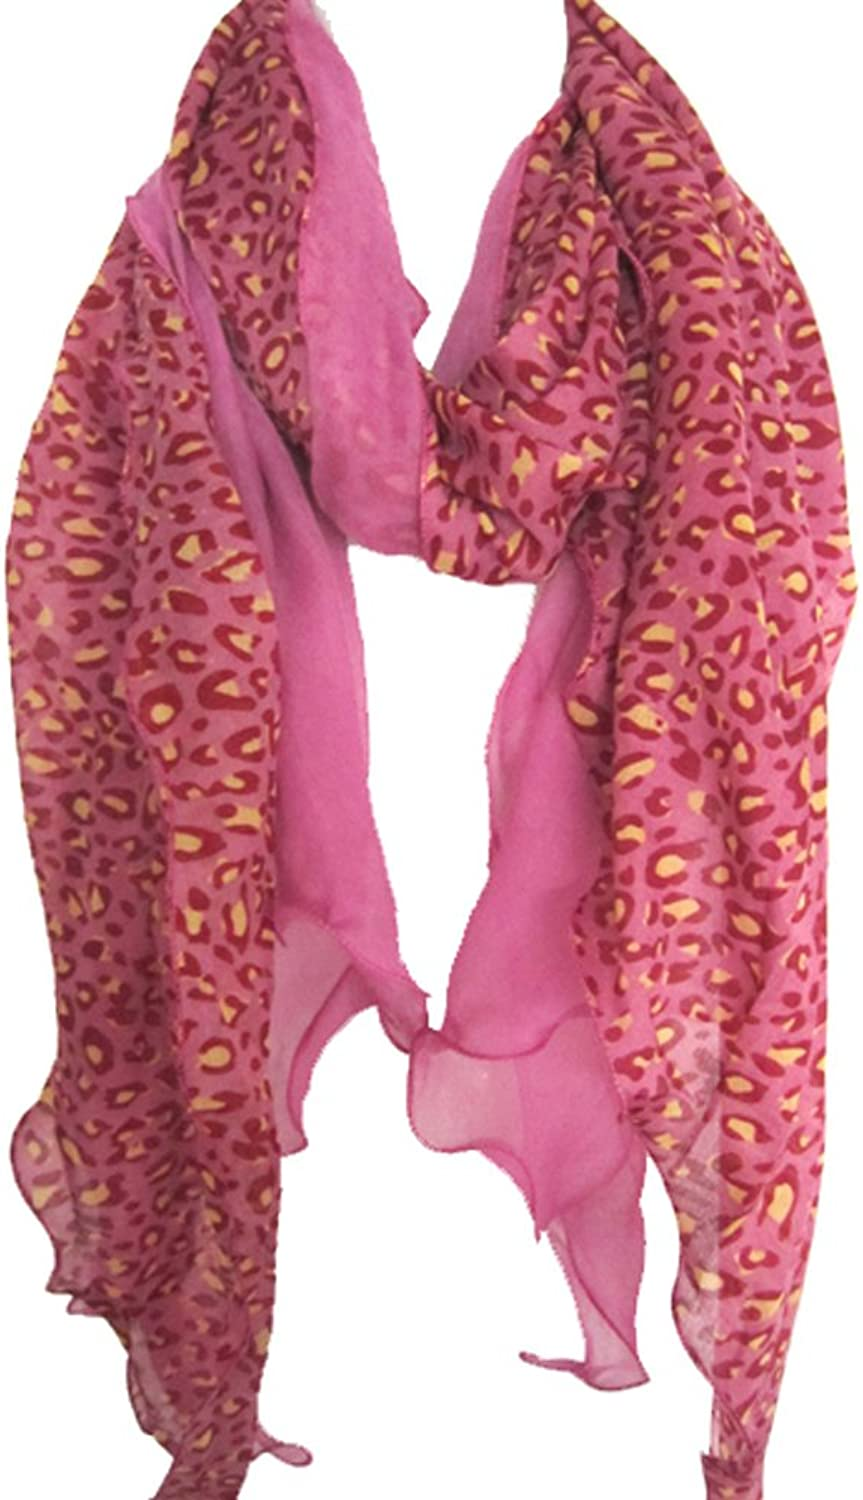 Leopard Animal Print Shawl Long Scarf Light Sheer Tonal Accent By Silver Fever Brand (Pink Fuchsia Yellow)